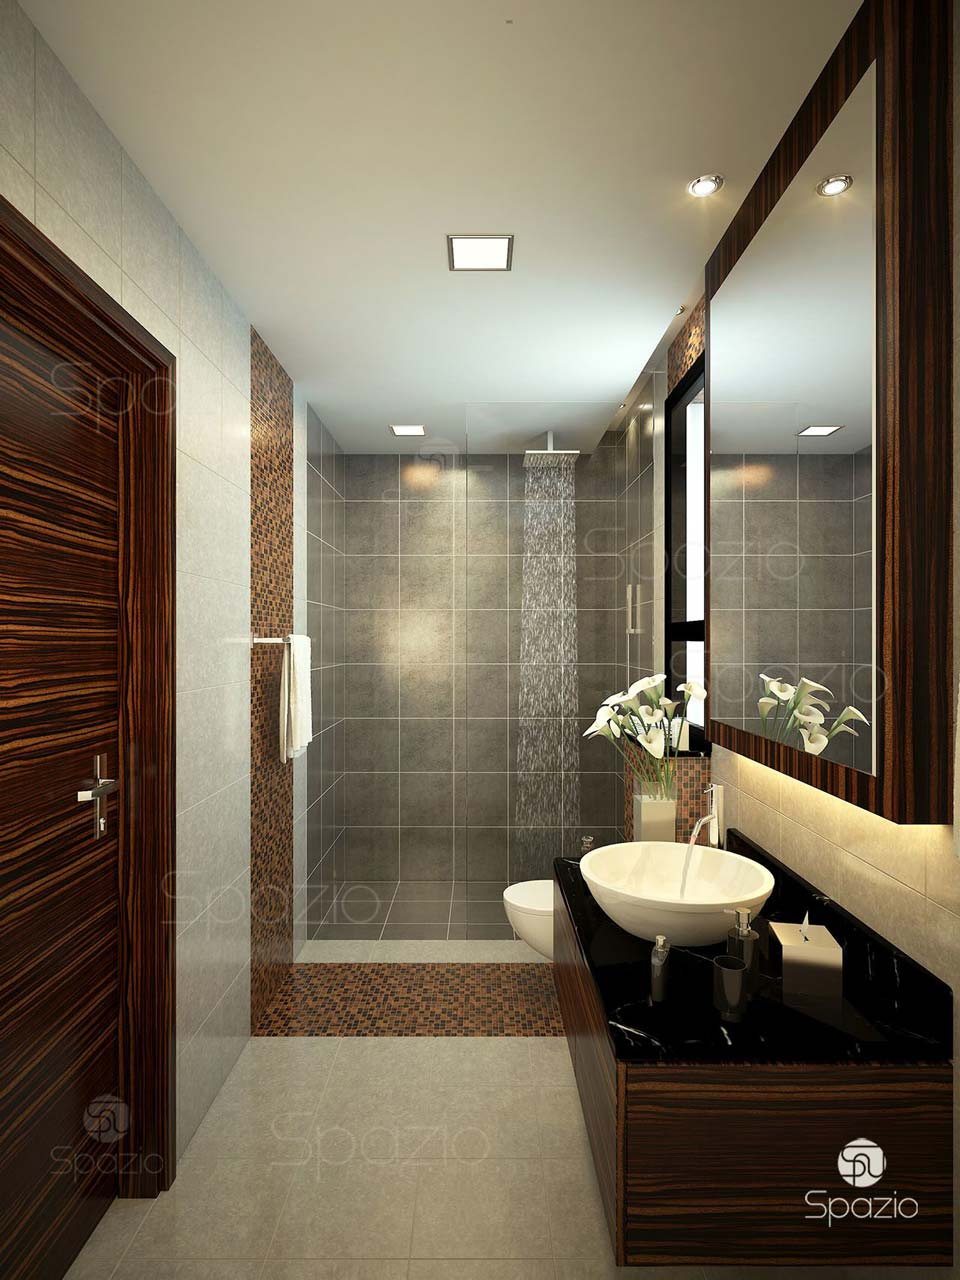 Bathroom design in Dubai | Bathroom designs 2020 | Spazio